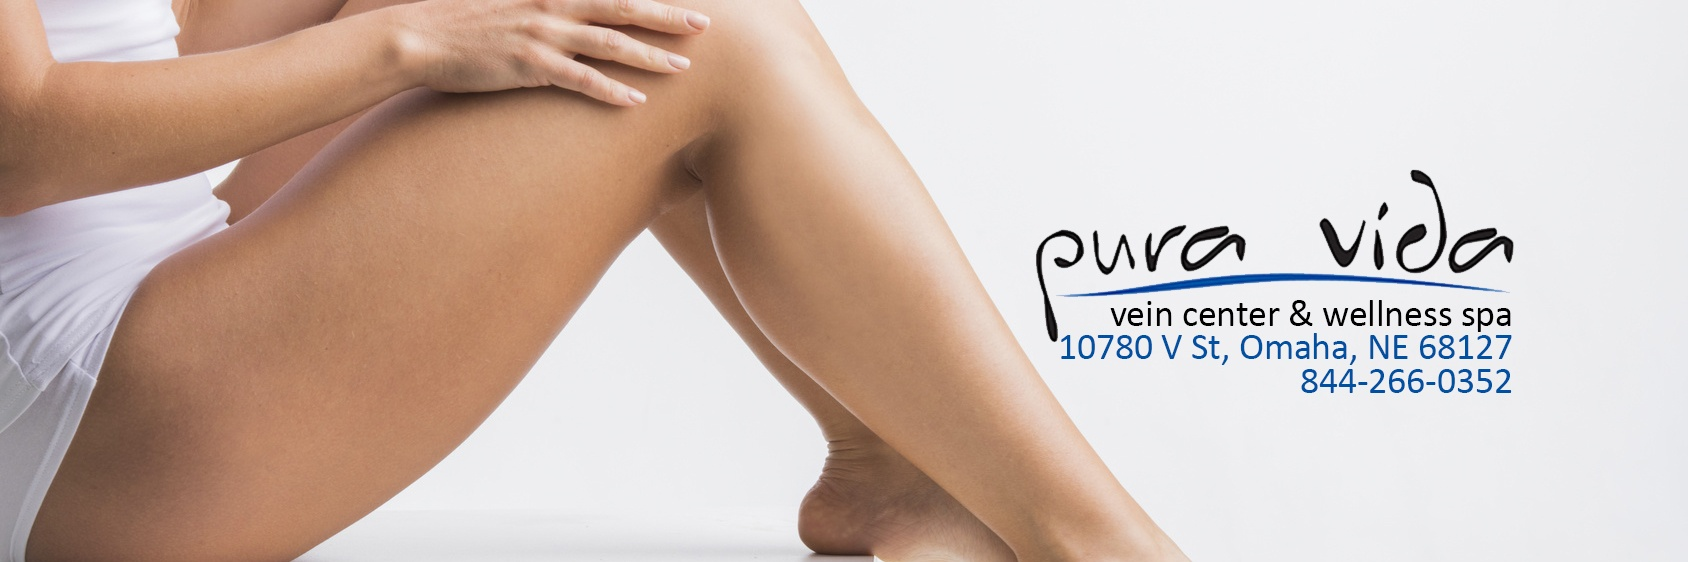 Woman with smooth legs after varicose spider veins removal